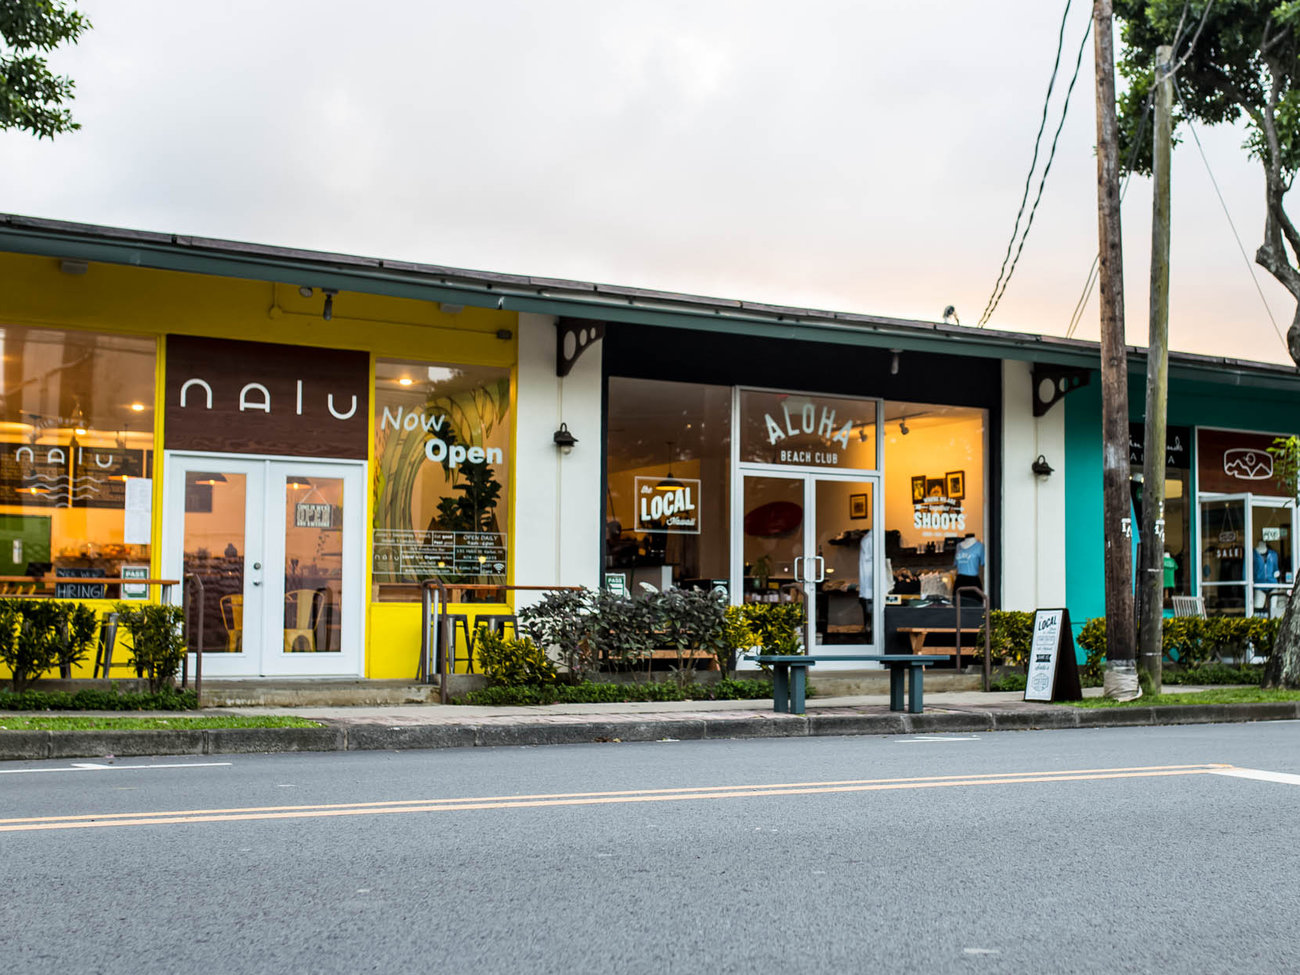 Aloha Beach Club Store in Oahu